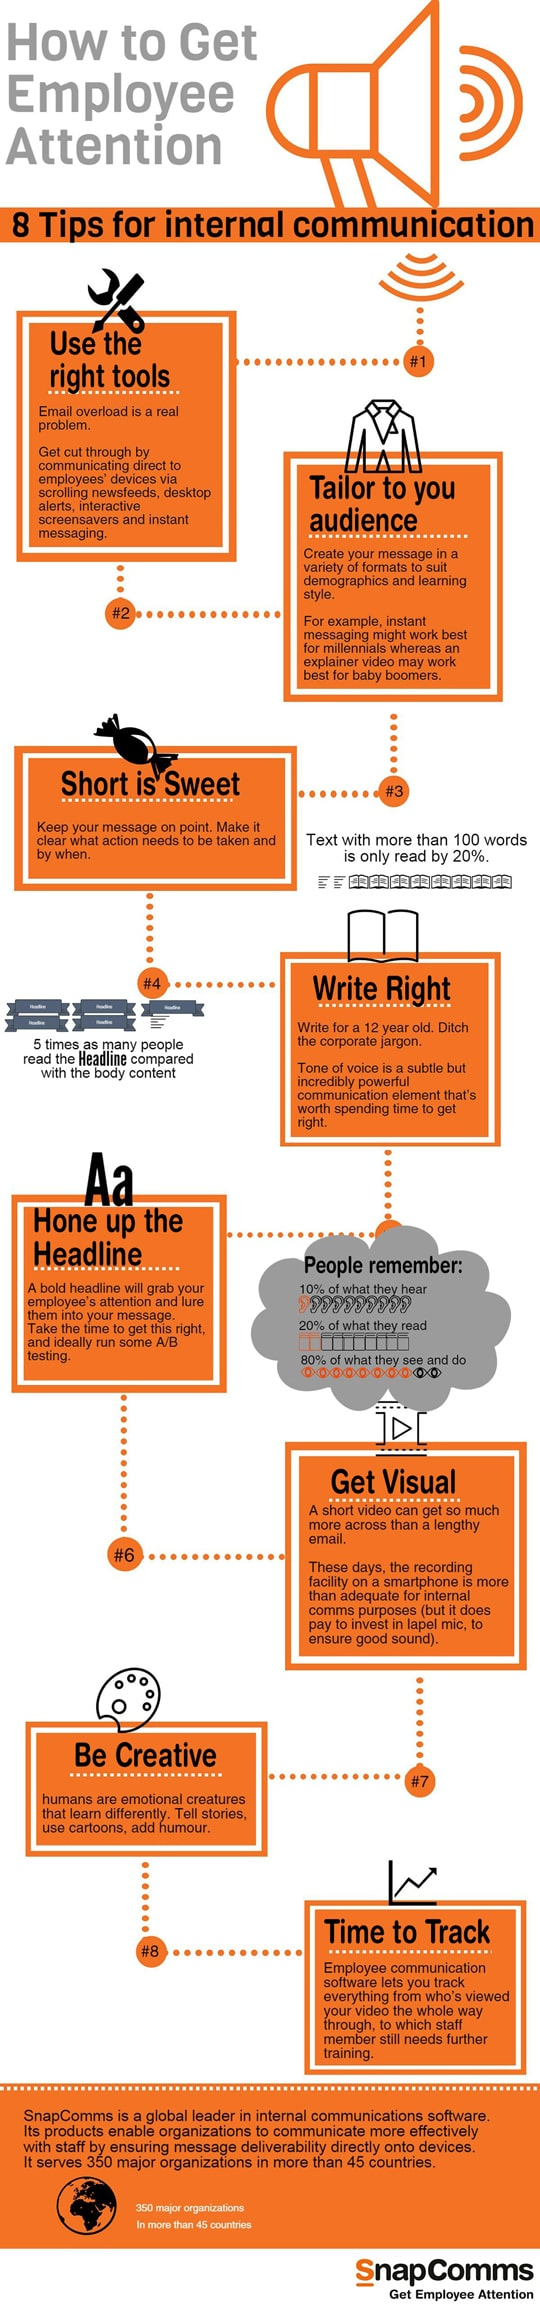 How Get Employee Attention infographic